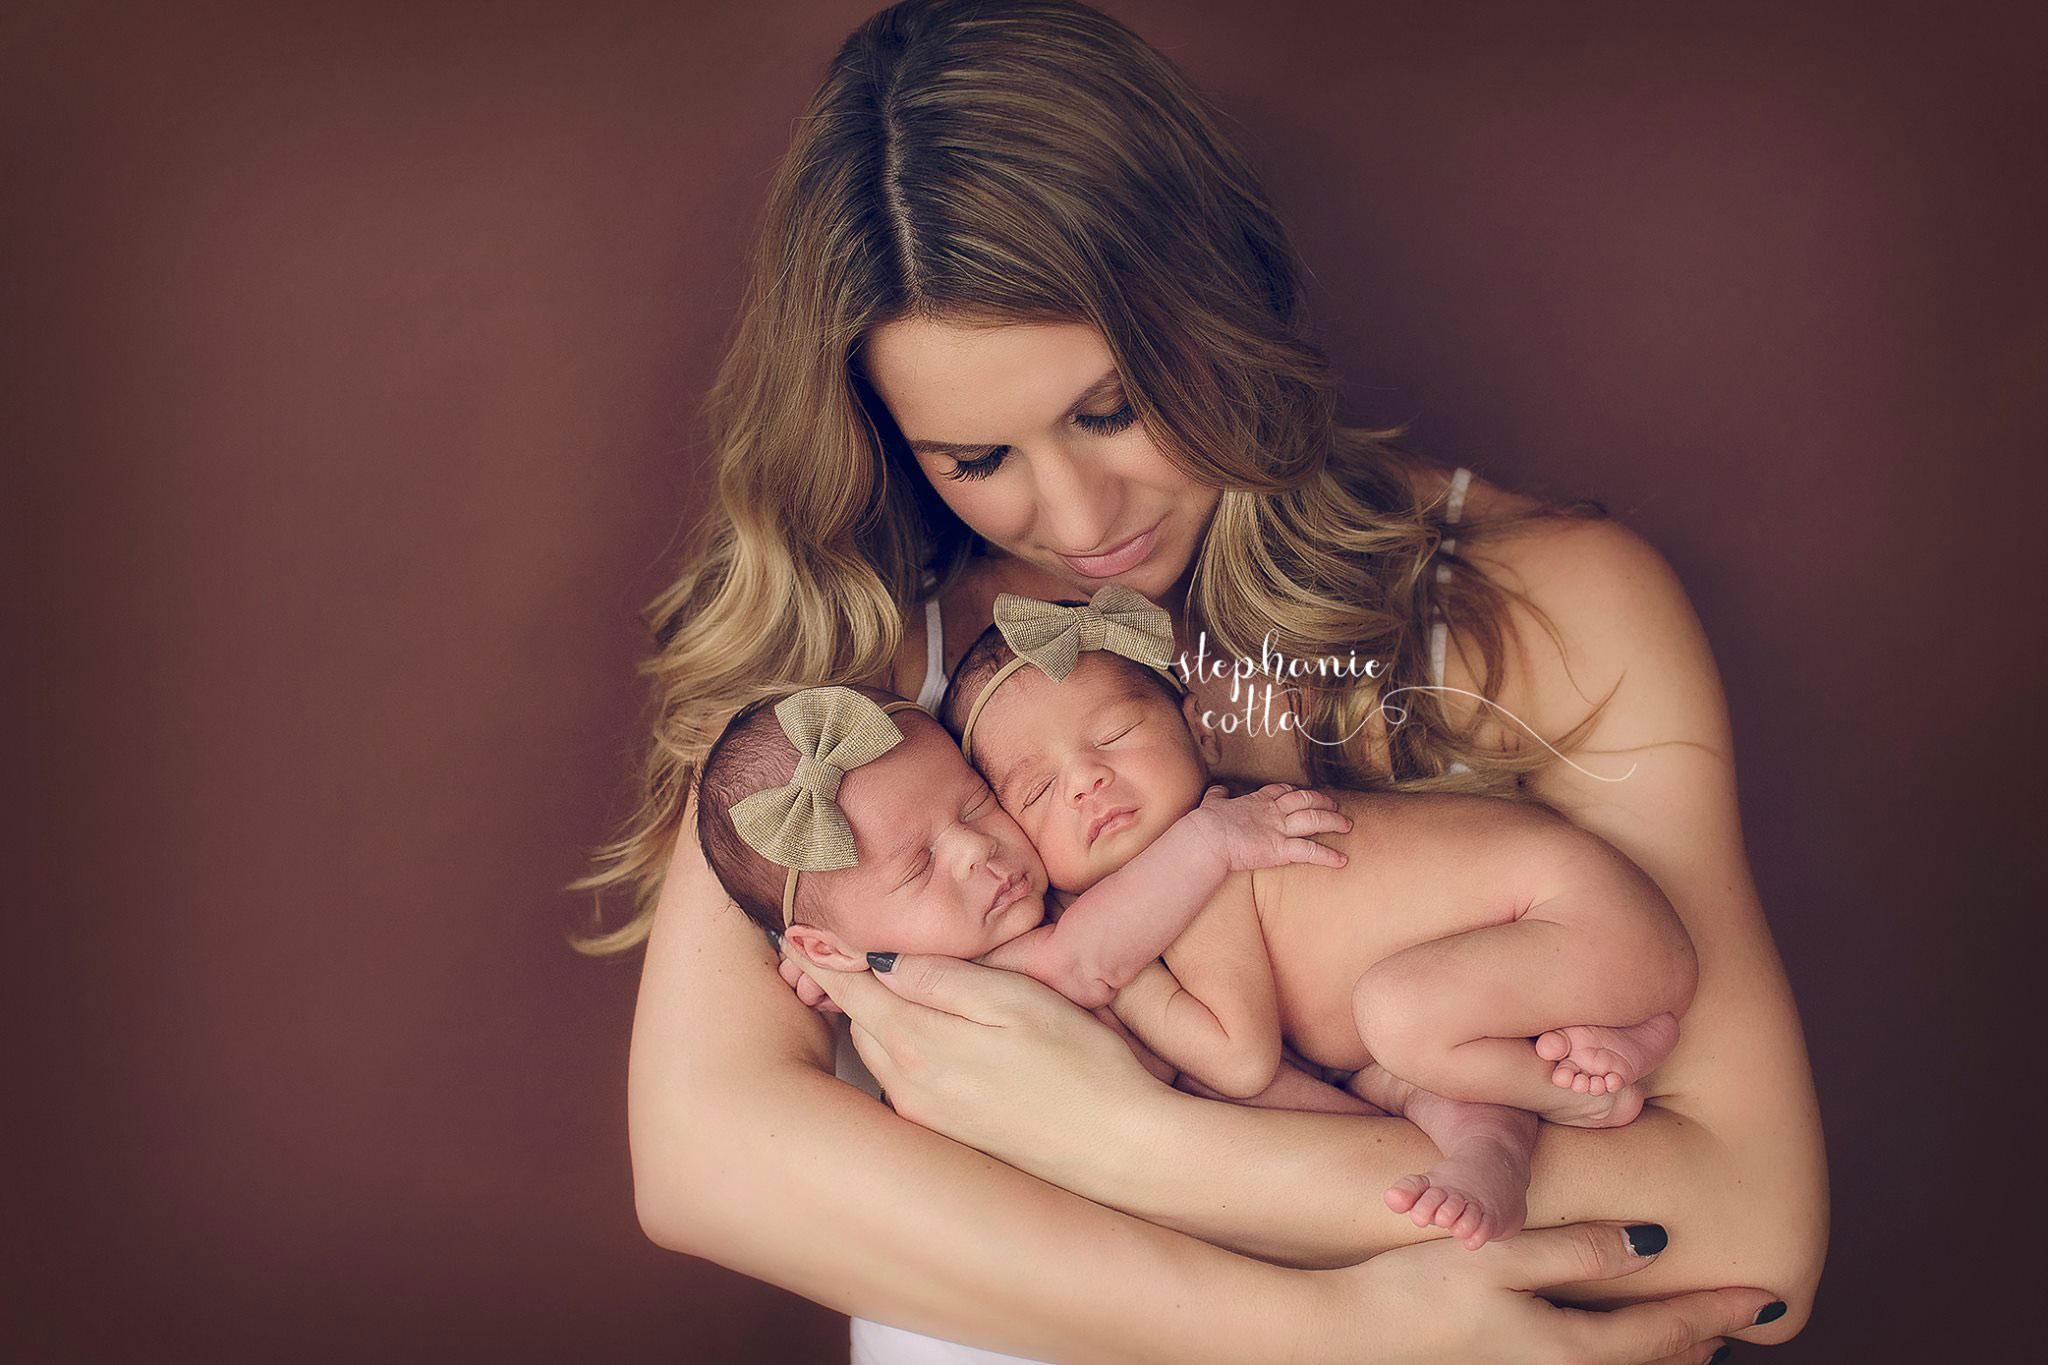 cg-pro-newborn-photography-stephanie-cotta-3